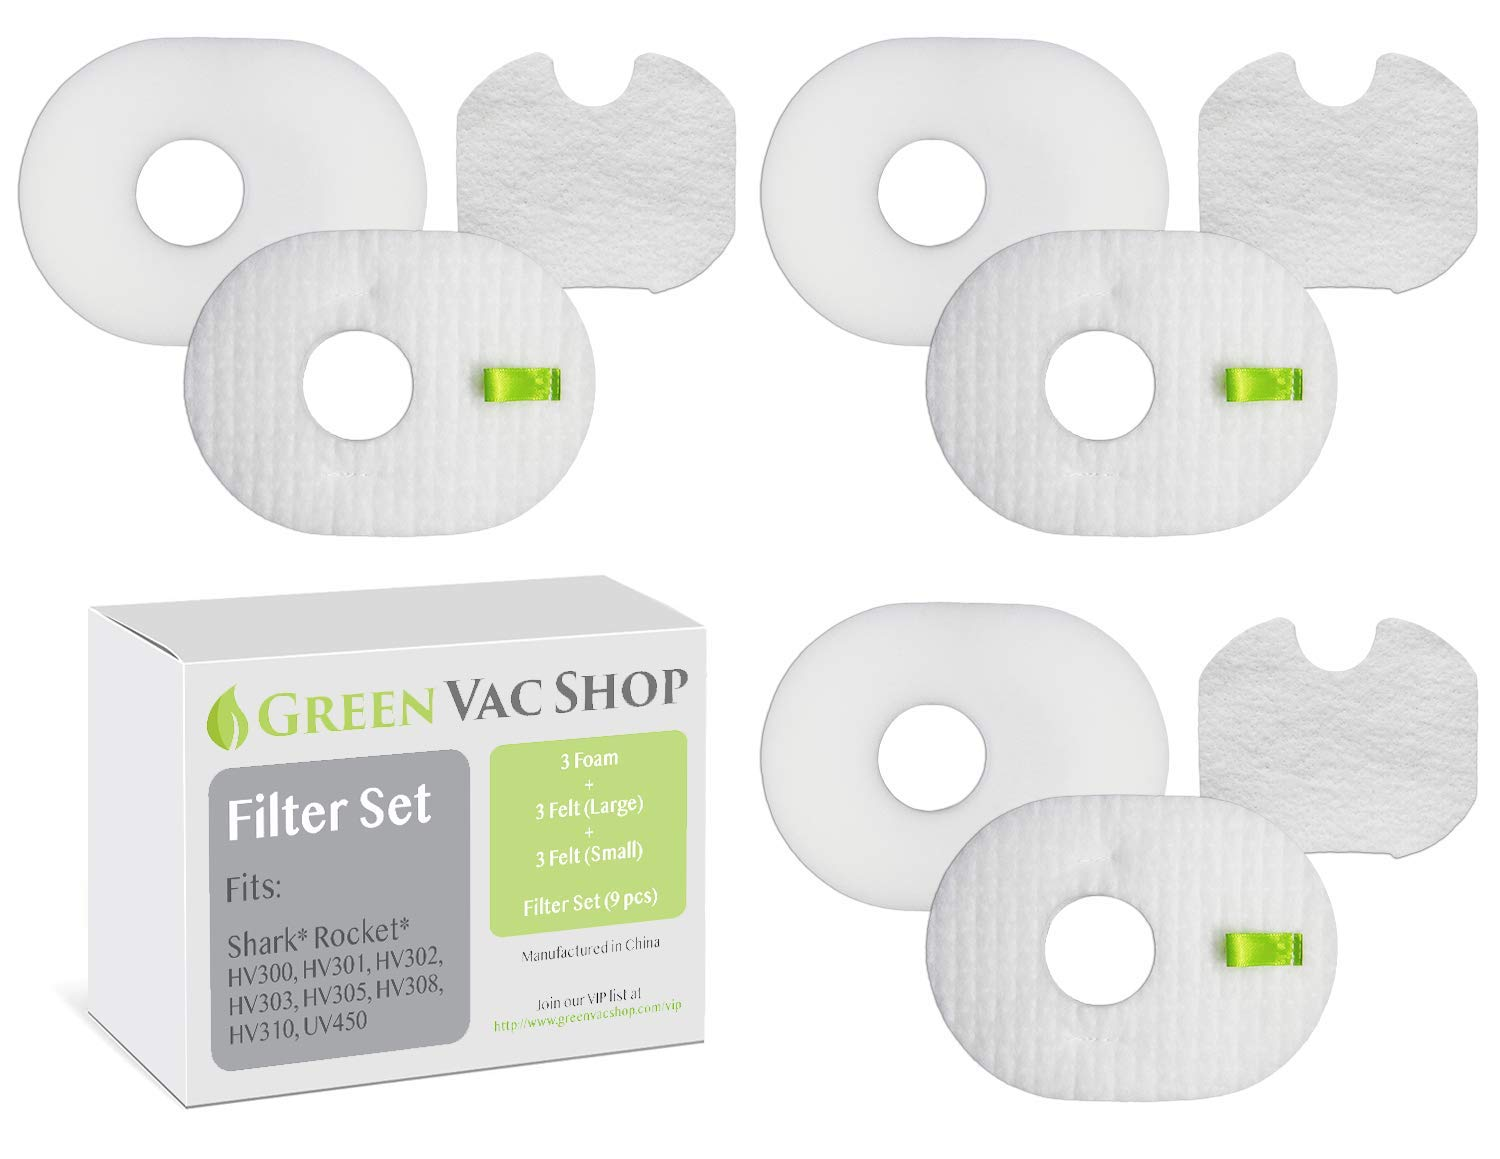 GreenVacShop Shark Rocket HV300, HV300W, HV301, HV302, HV303, HV305, HV308, HV310, UV450 Replacement Filter Set, 6 Pre-Filters (3 Foam+3 Felt) and 3 Post-Filters, Replaces Shark Part# XFFV300